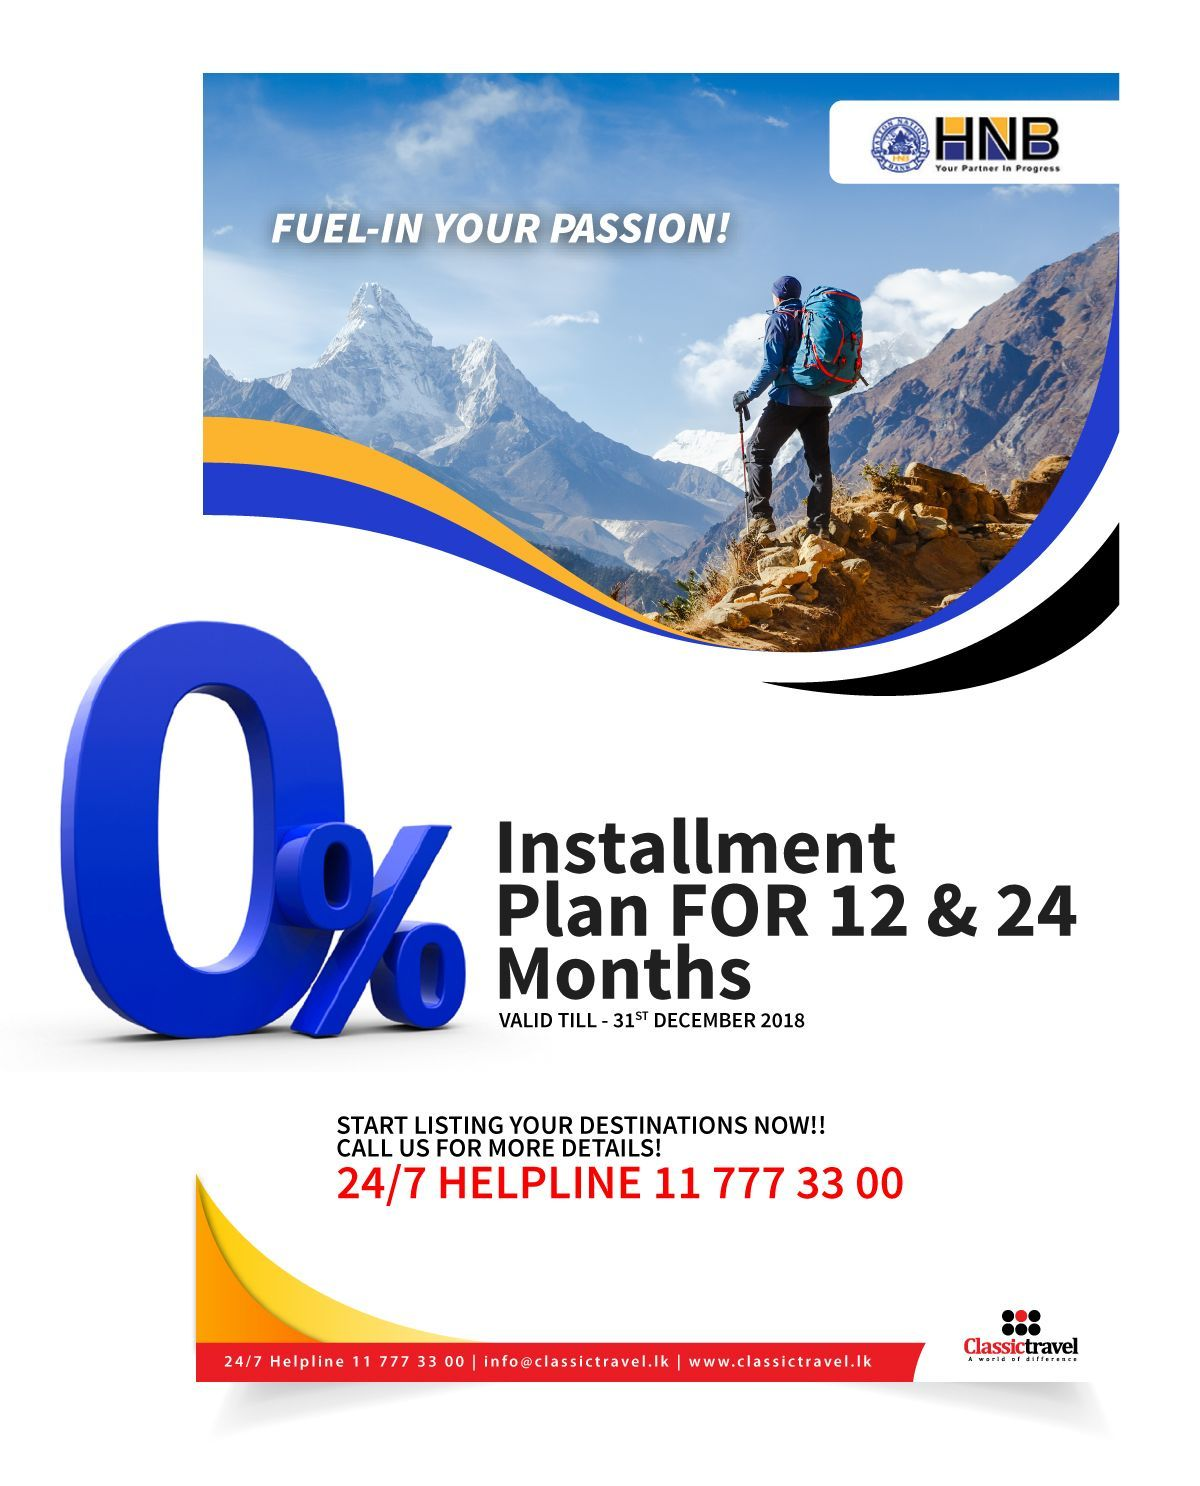 0 installment plans on travel for 12 18 24 months with